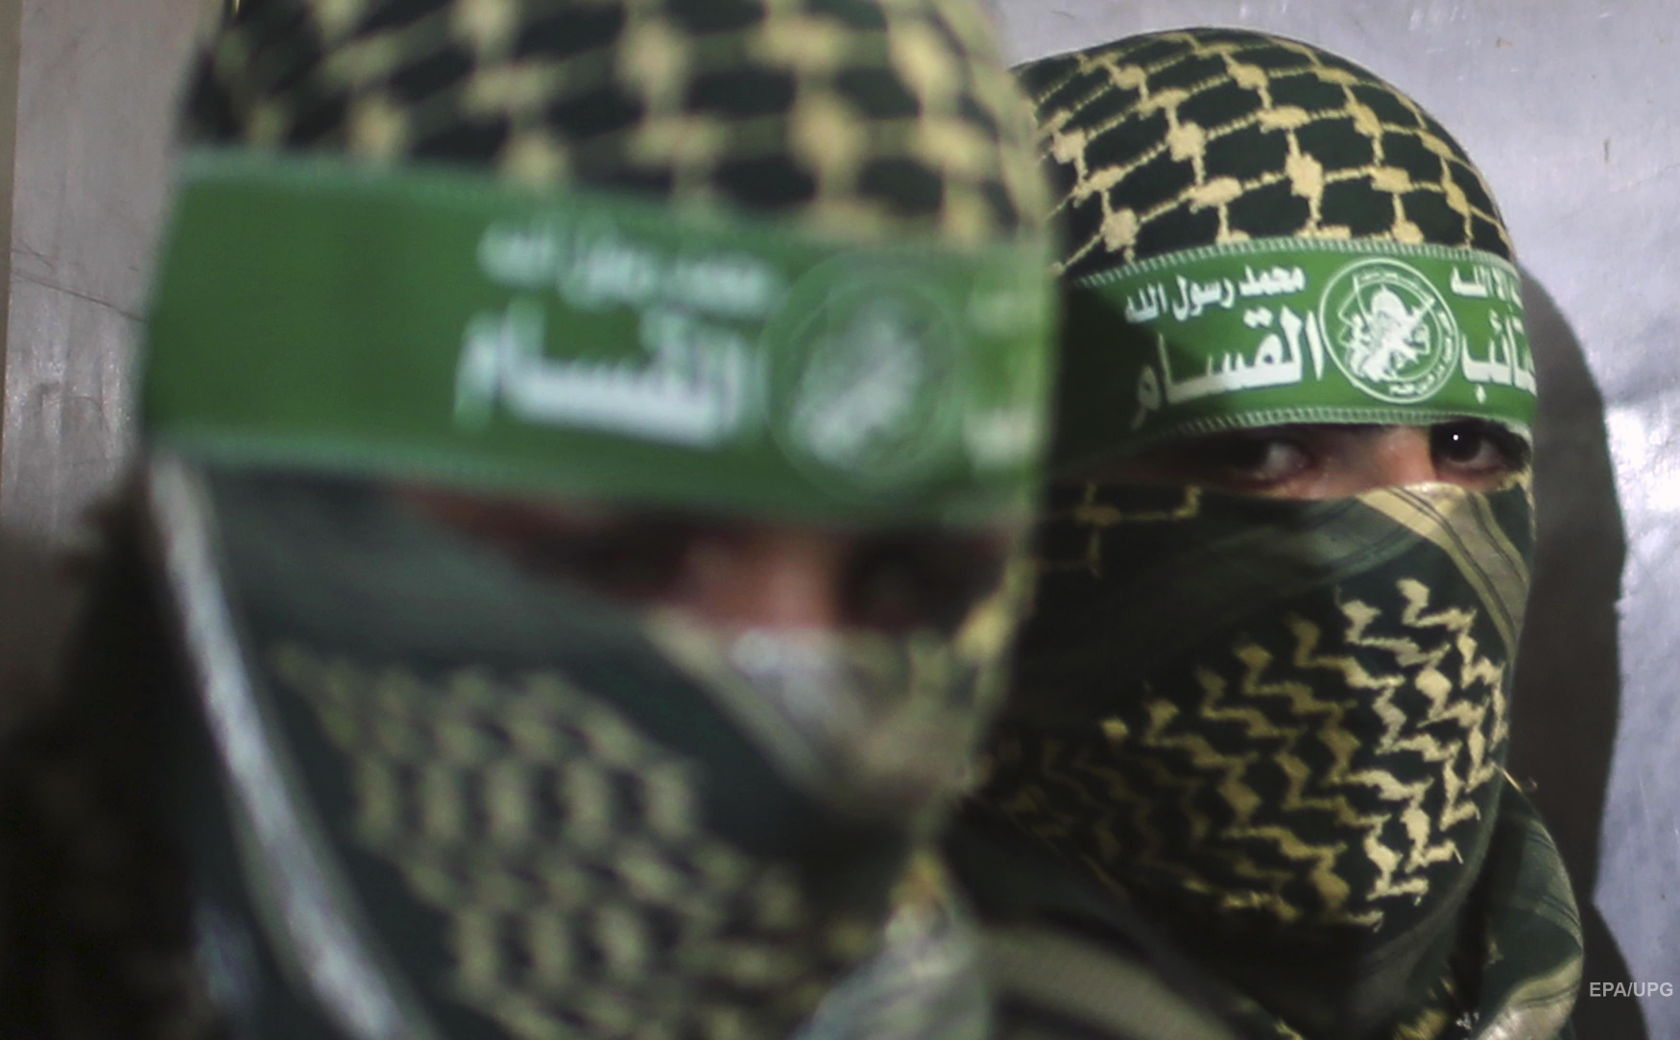 Political Extremist Groups and Islamic Movements in the